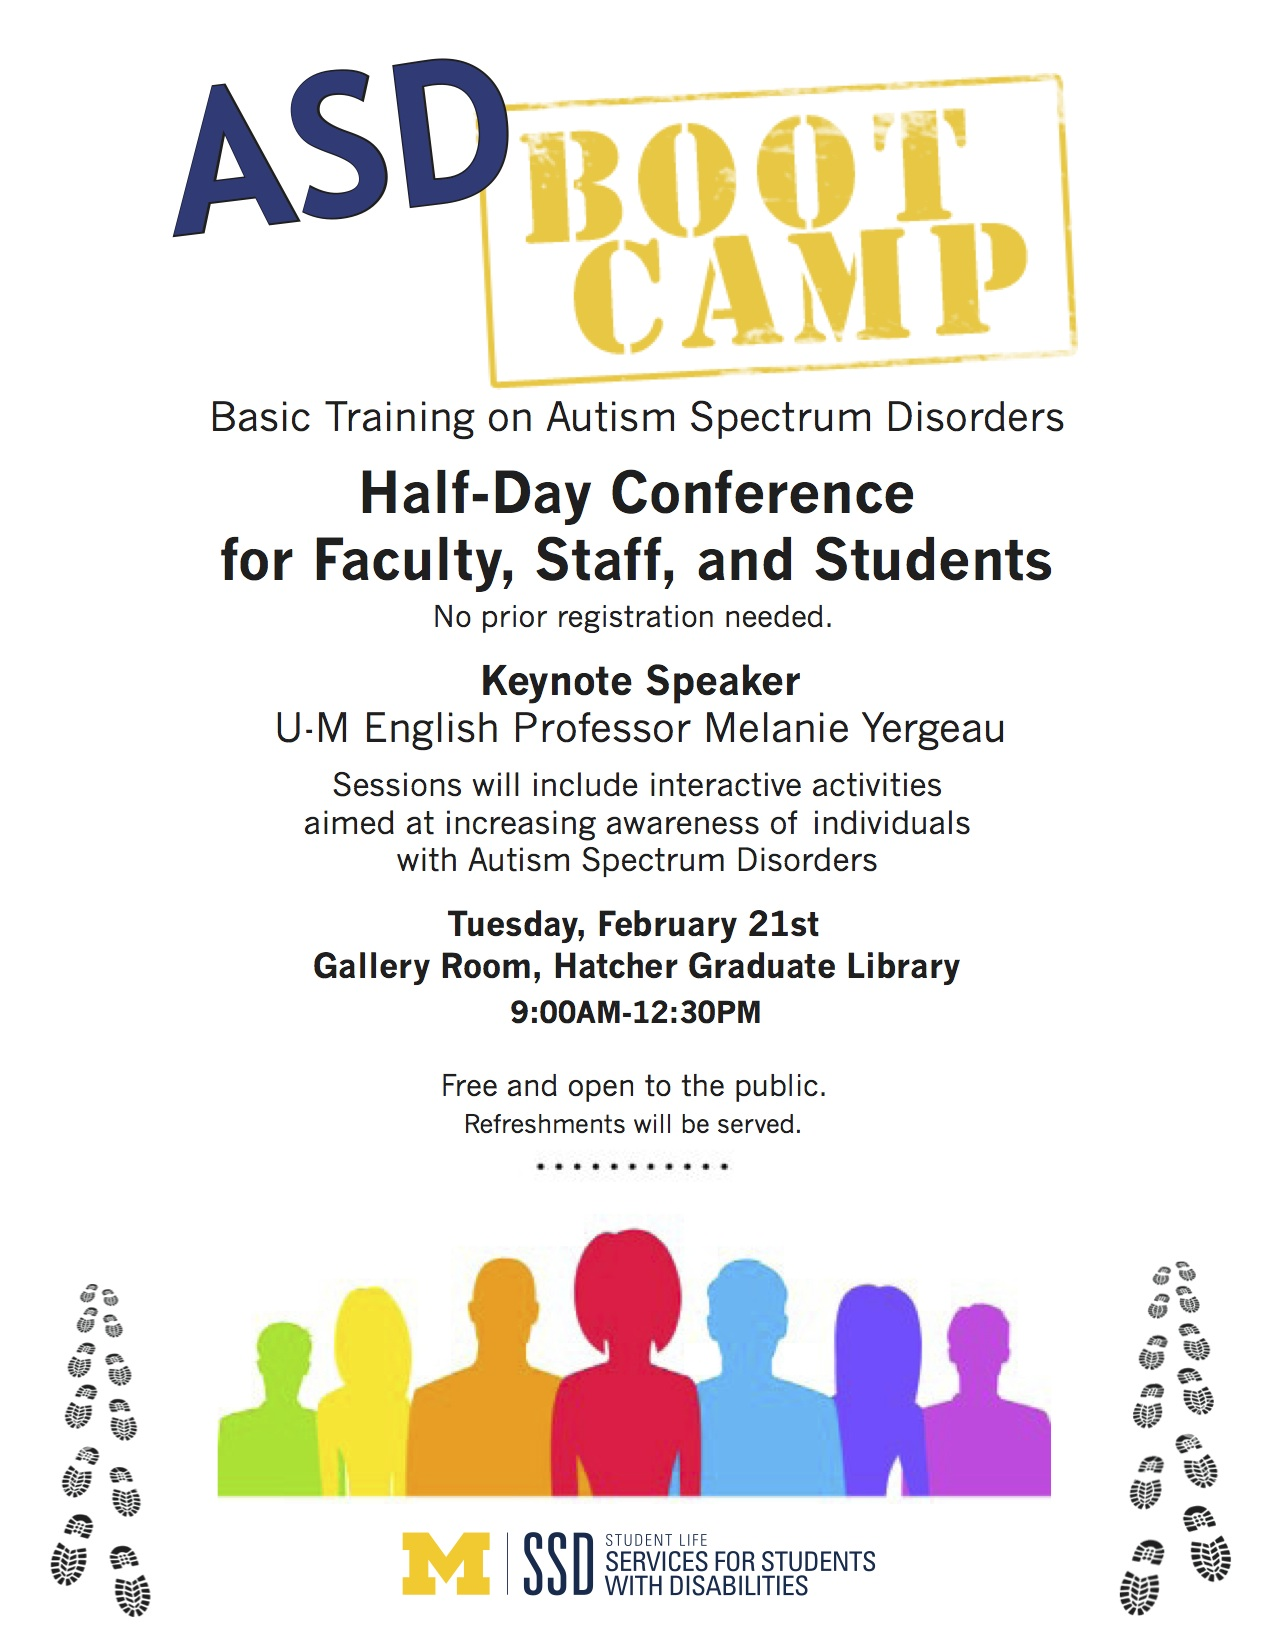 Tuesday, Feb 21st, 9:00 Half-Day Conference for faculty, staff, and students.  No prior registration needed. Keynote Speaker: U-M English Professor Melanie Yergeau.  Sessions will include interactive activities aimed at increasing awareness of individuals with Autism Spectrum Disorders. Refreshments will be served.